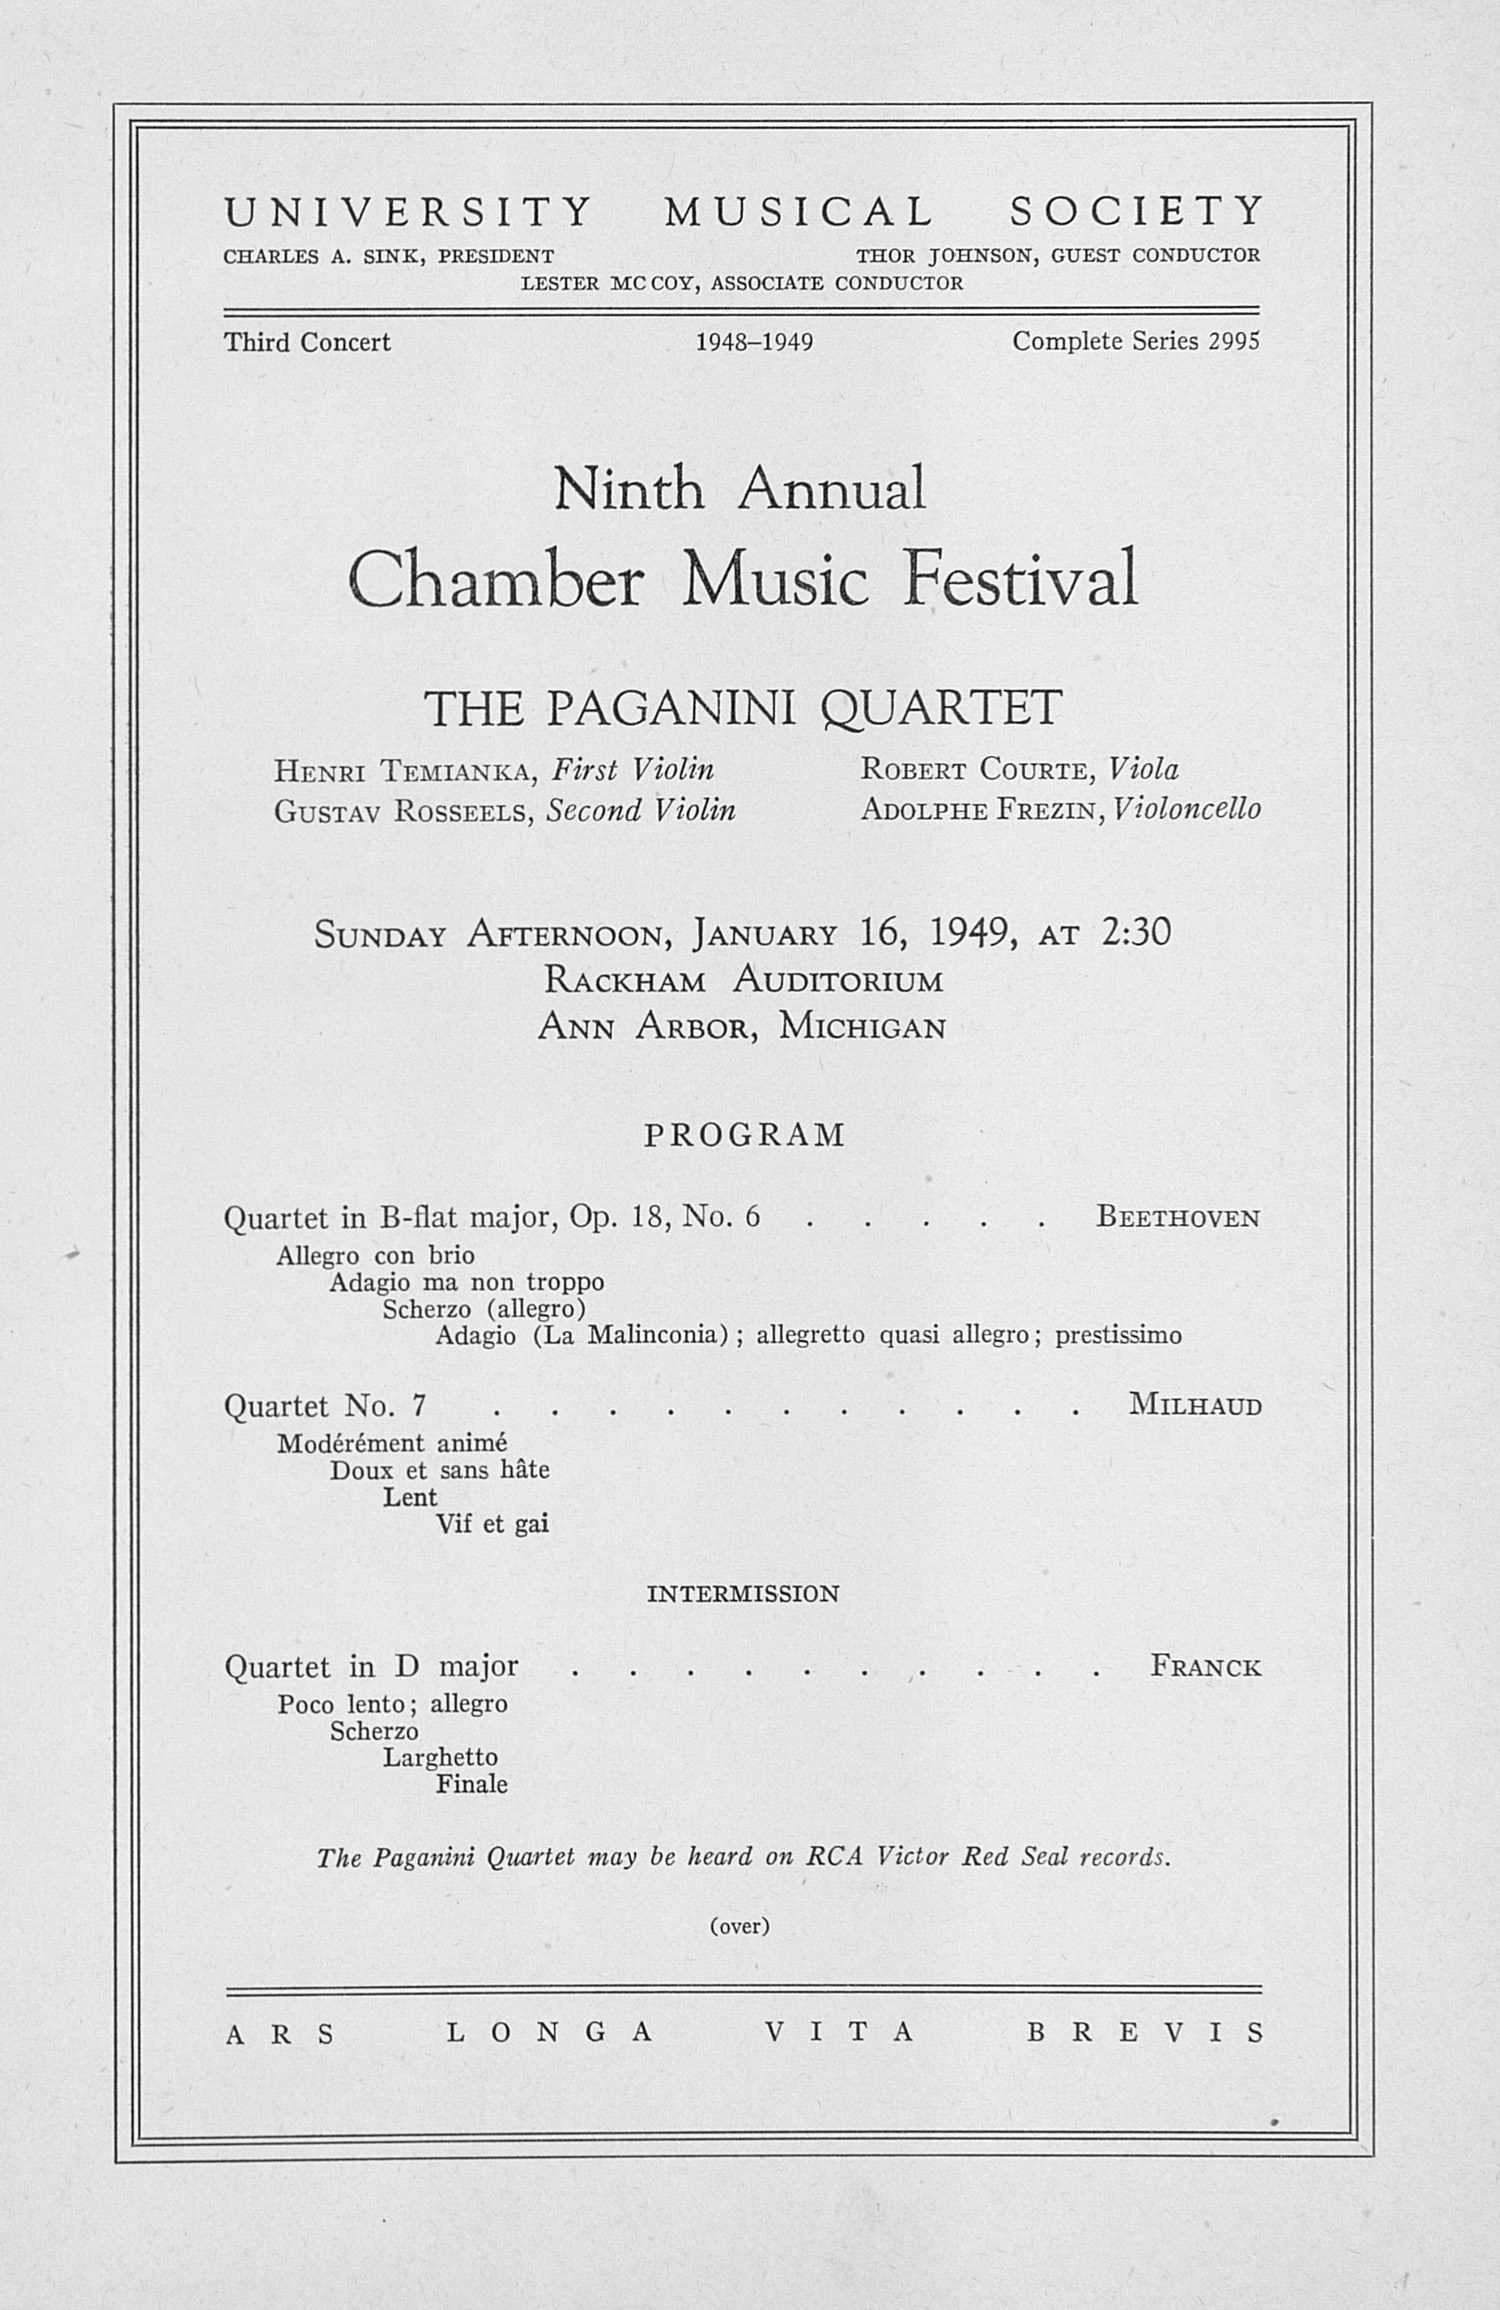 UMS Concert Program, January 16, 1949: Ninth Annual Chamber Music Festival -- The Paganini Quartet image